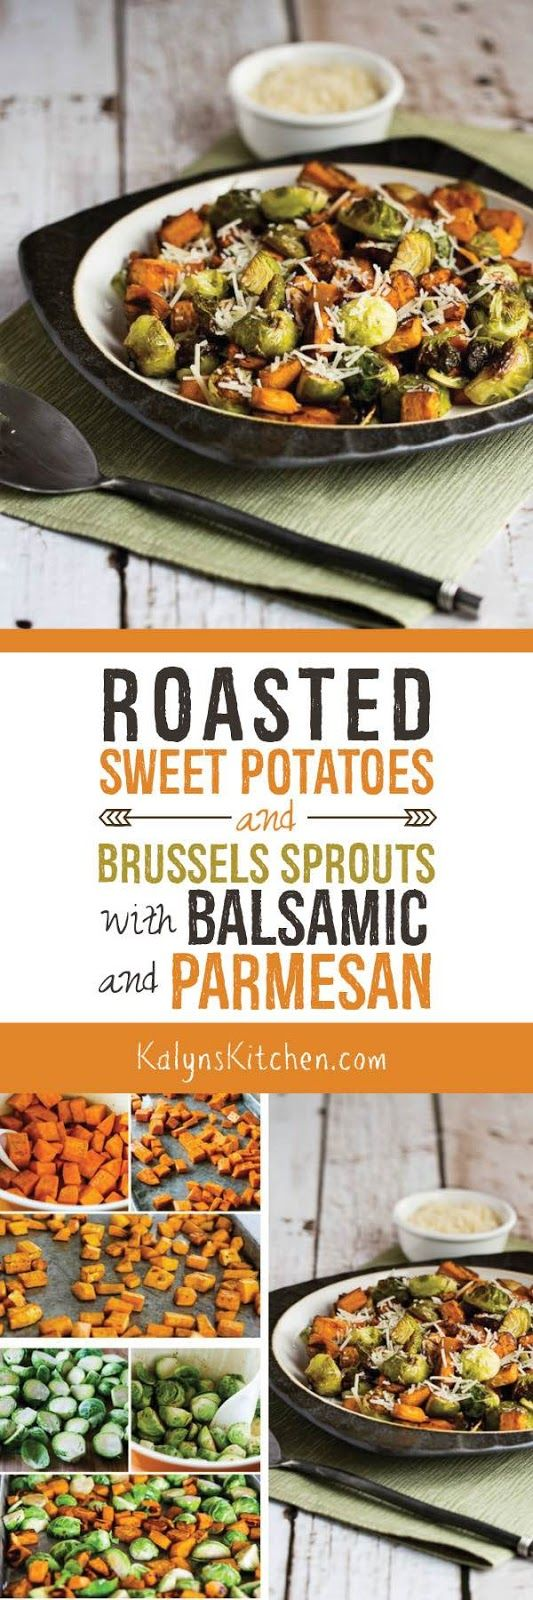 Roasted Sweet Potatoes and Brussels Sprouts with Balsamic and Parmesan is a perfect dish for Meatless Monday or as a Thanksgiving side, and if you skip the Parmesan this is Paleo or Whole 30. [KalynsKitchen.com]